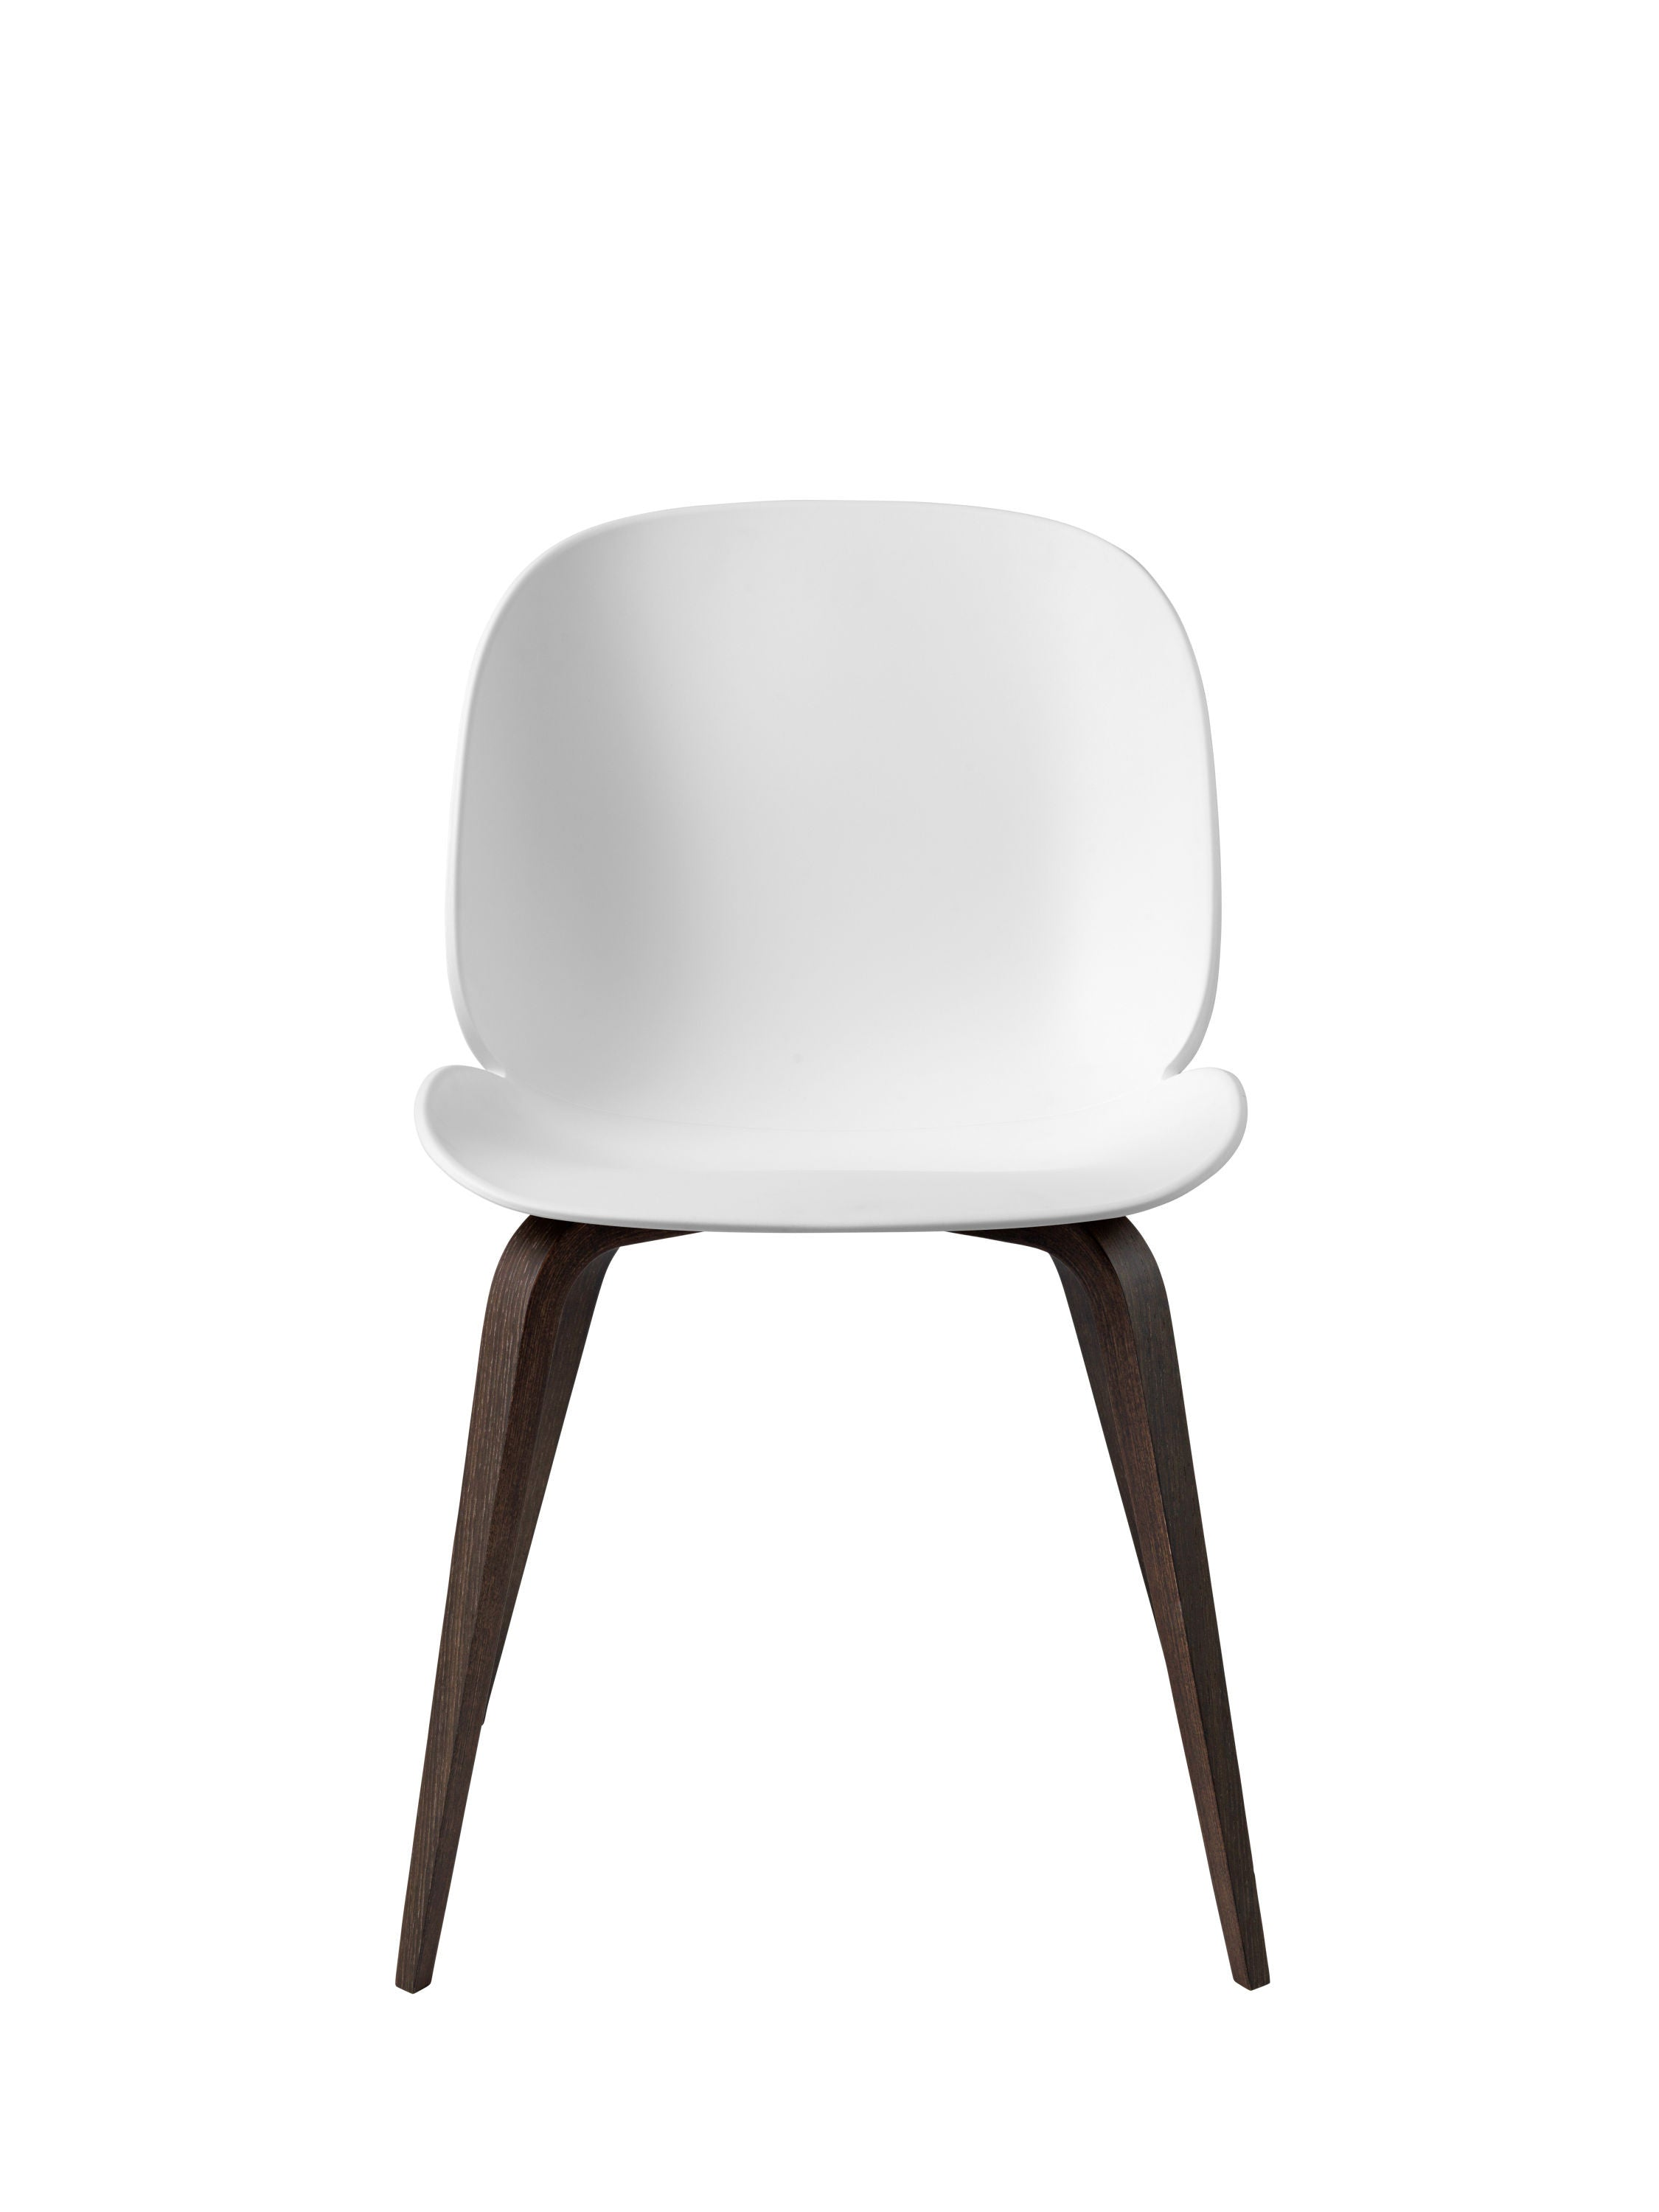 Beetle Dining Chair - Un-upholstered Smoked Oak base, White shell fra GUBI